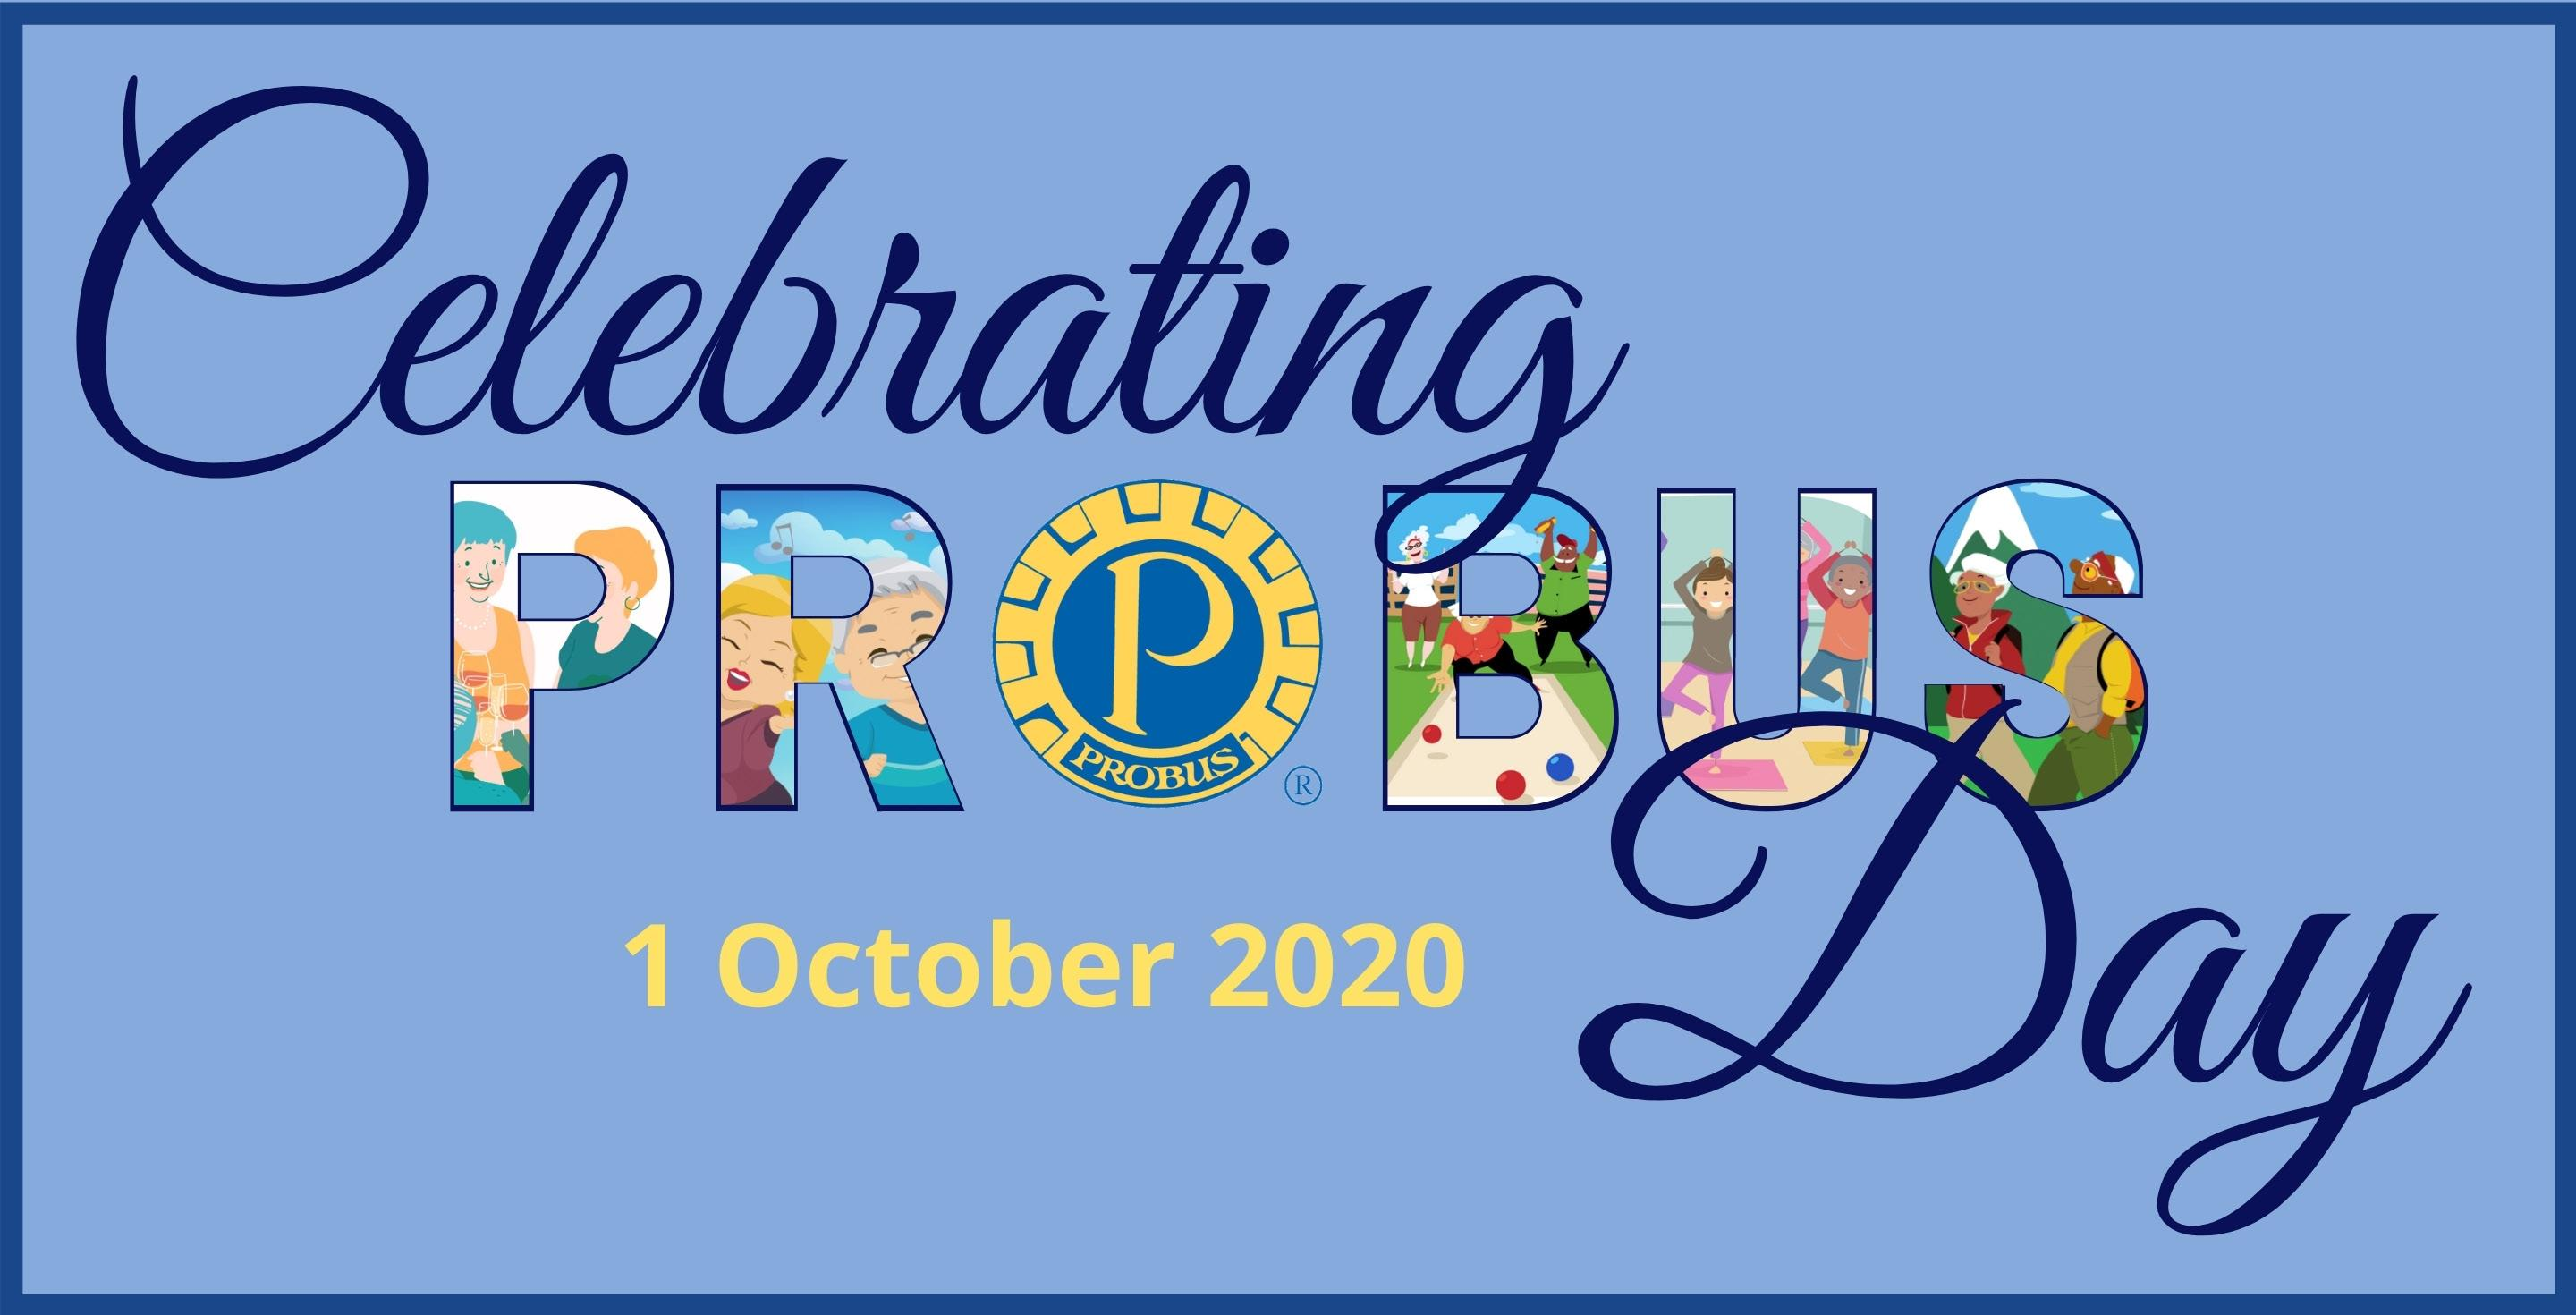 Page 18 of Probus Day Celebrations